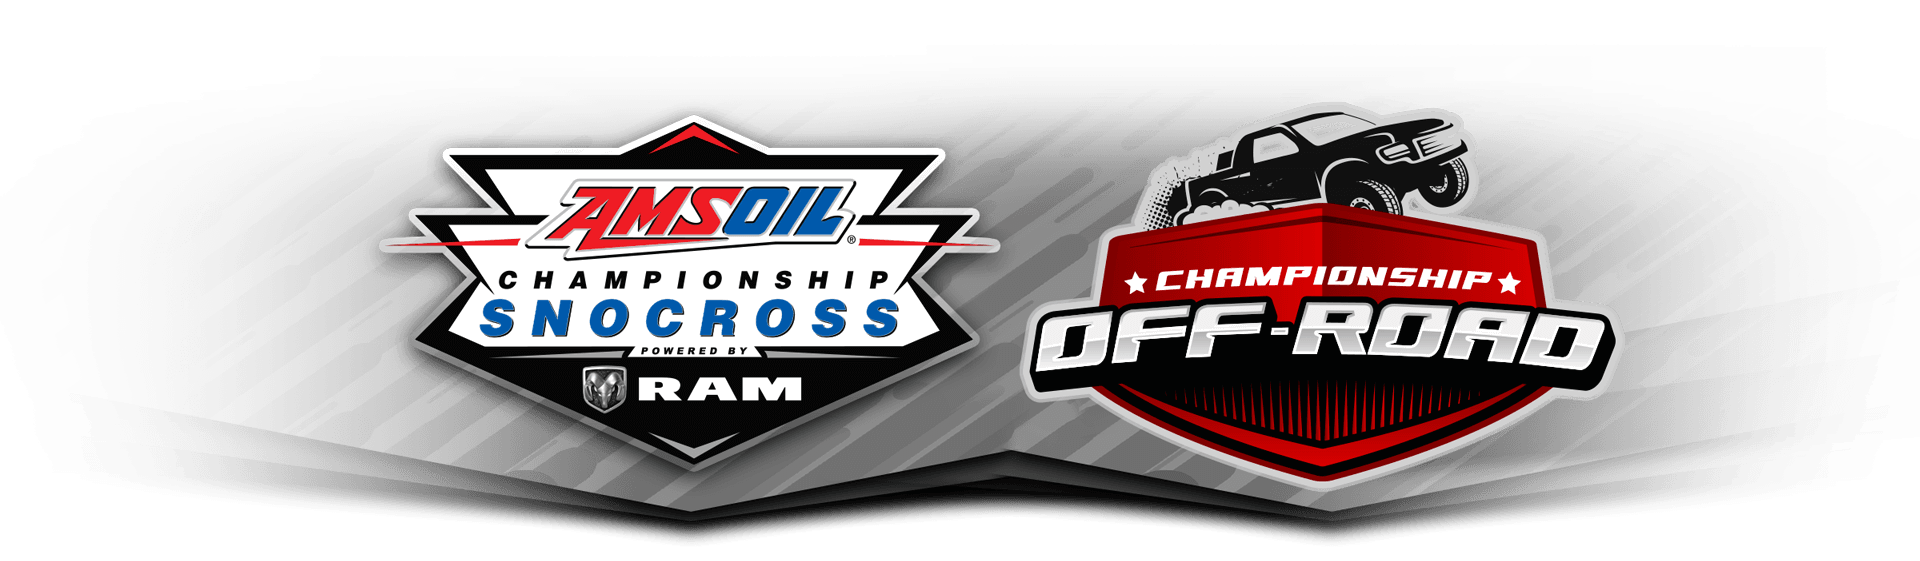 OFFICIAL SNOCROSS & OFF-ROAD STORE